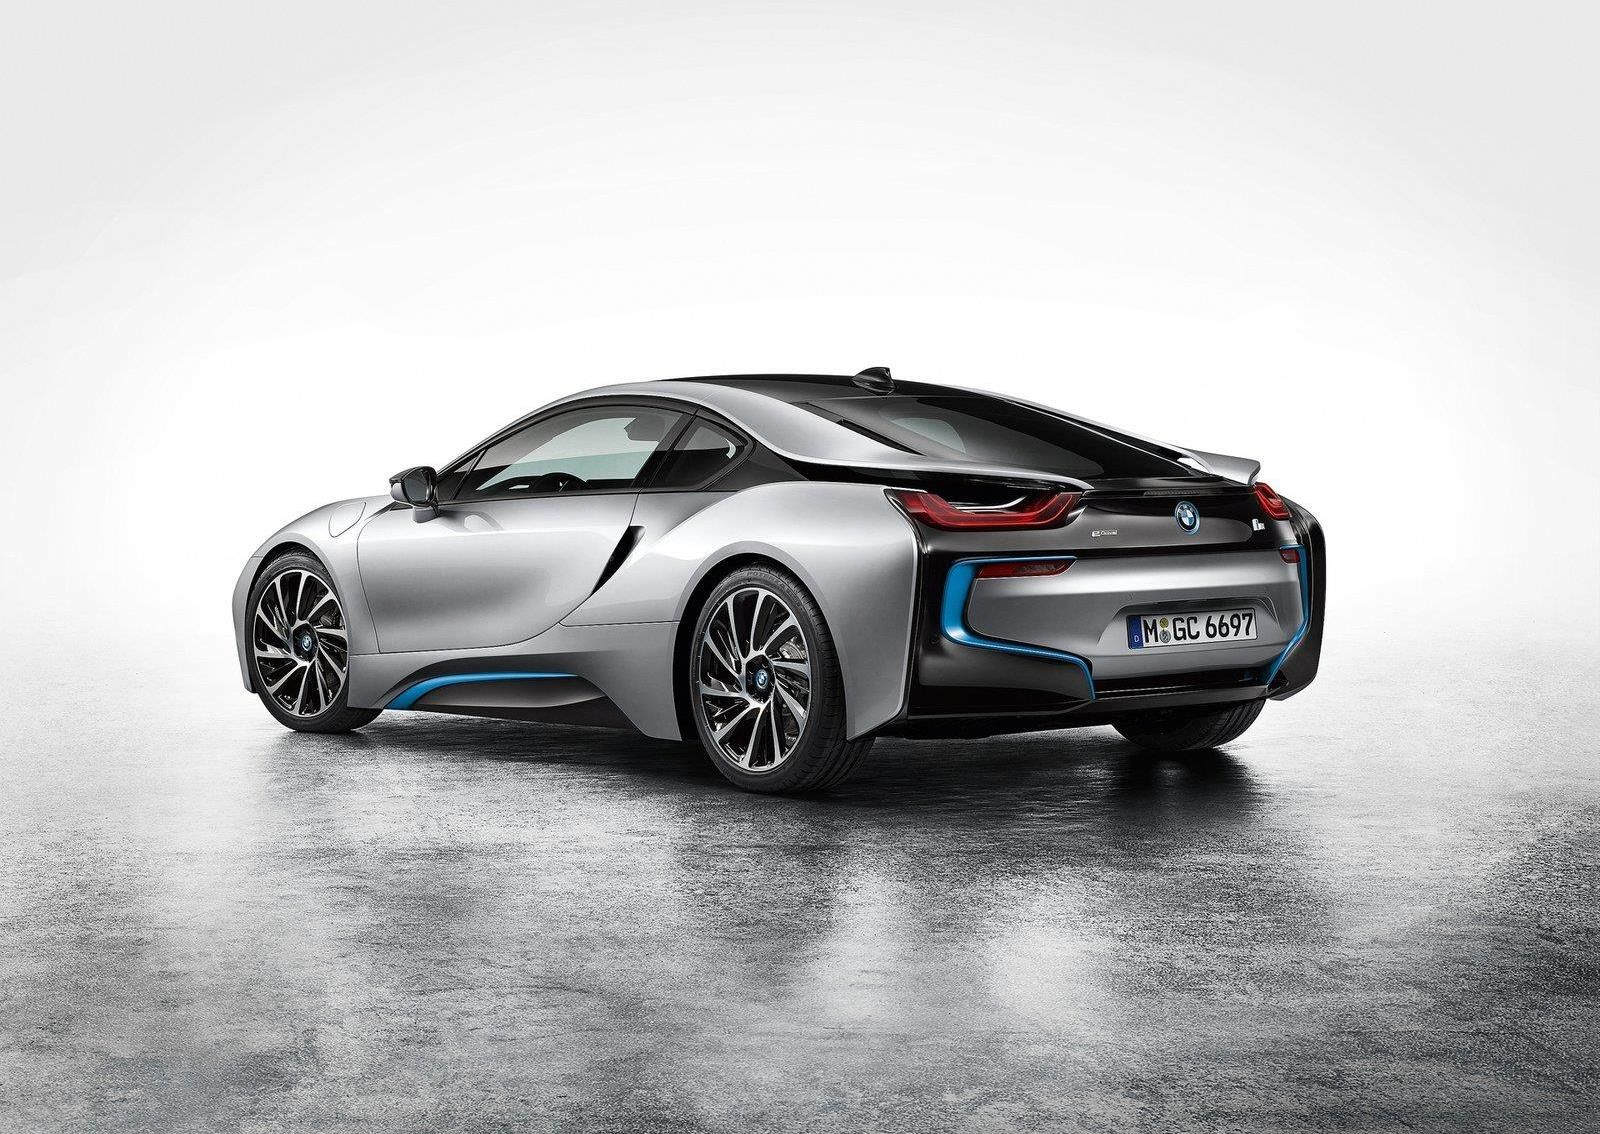 Bmw I8 Rear View Maxabout Images Pinterest Bmw I8